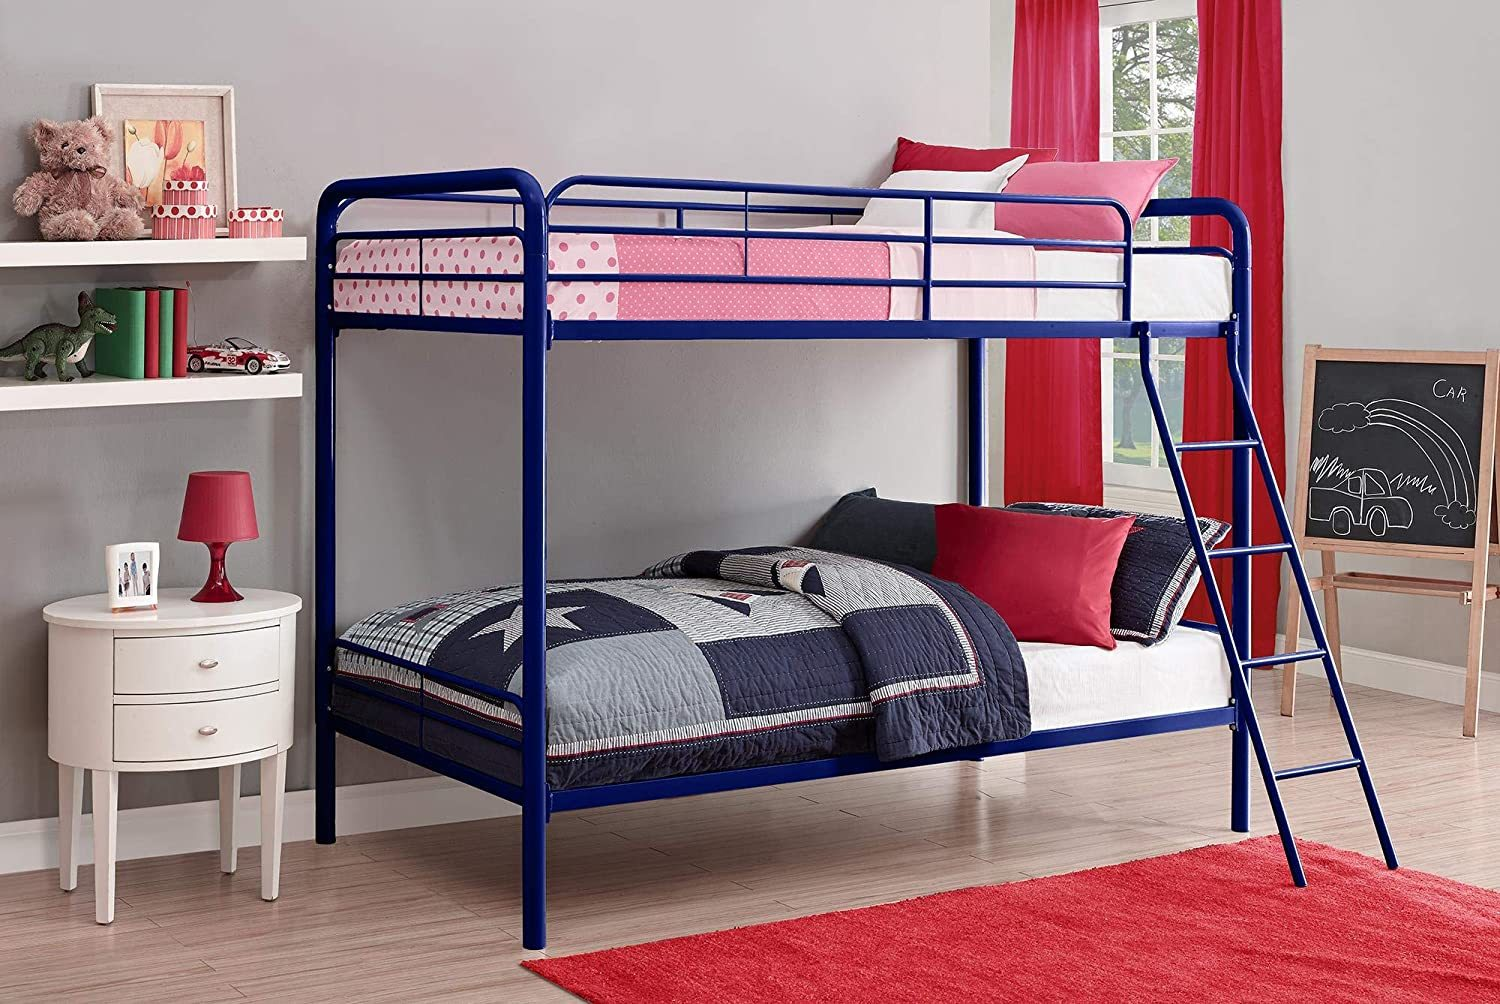 Bunk Beds Under $100 $150 $200 & $300 - DHP Bunk Bed - Twin-Over-Twin